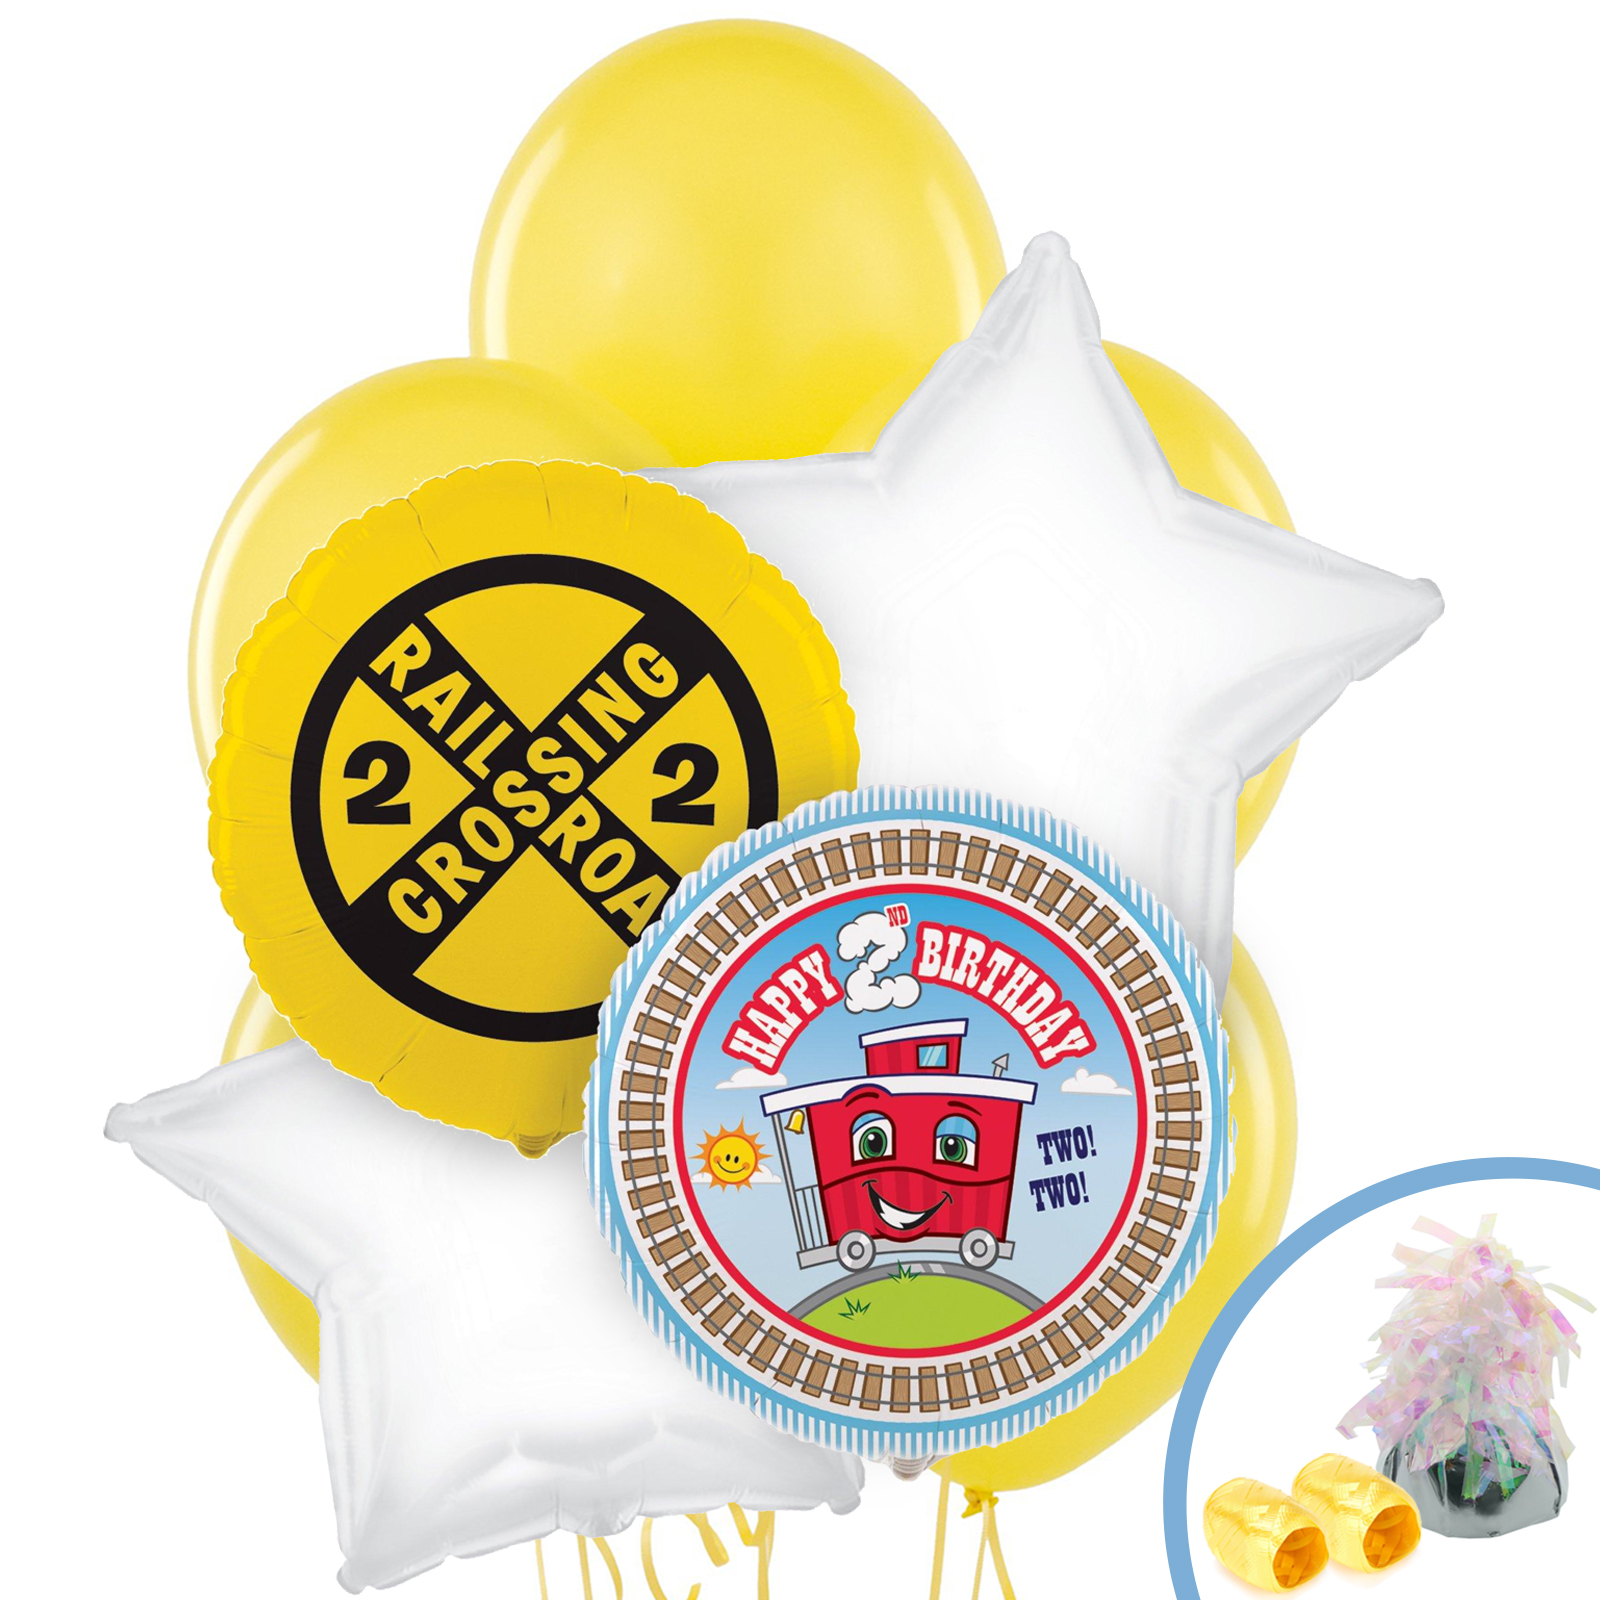 Birthday Balloon Images Part - 24: Default Image - Two-Two Train 2nd Birthday Balloon Bouquet